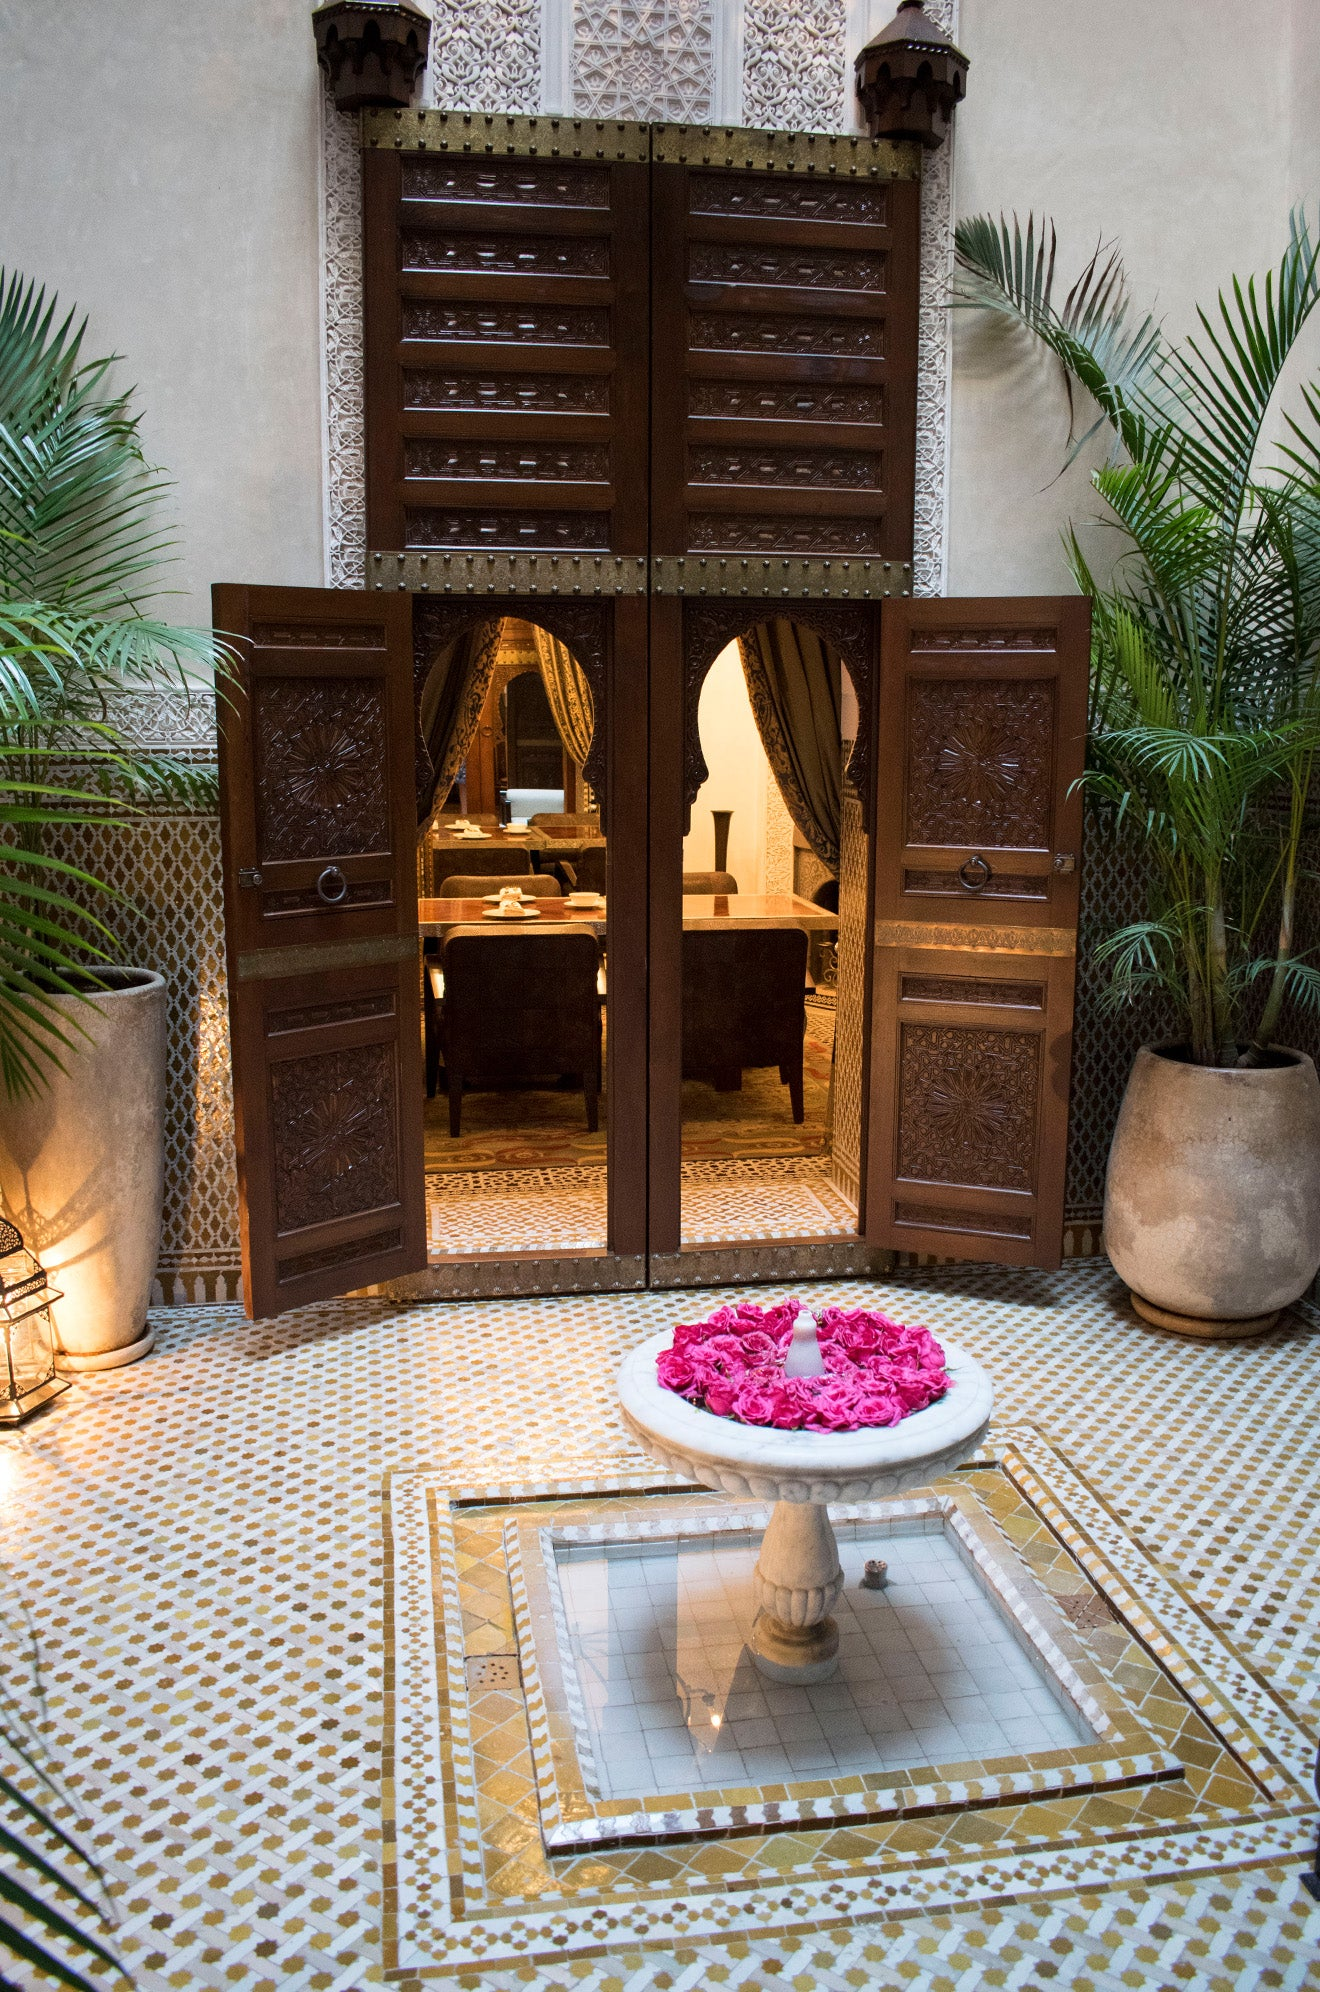 Moroccan central courtyard with rose filled fountain